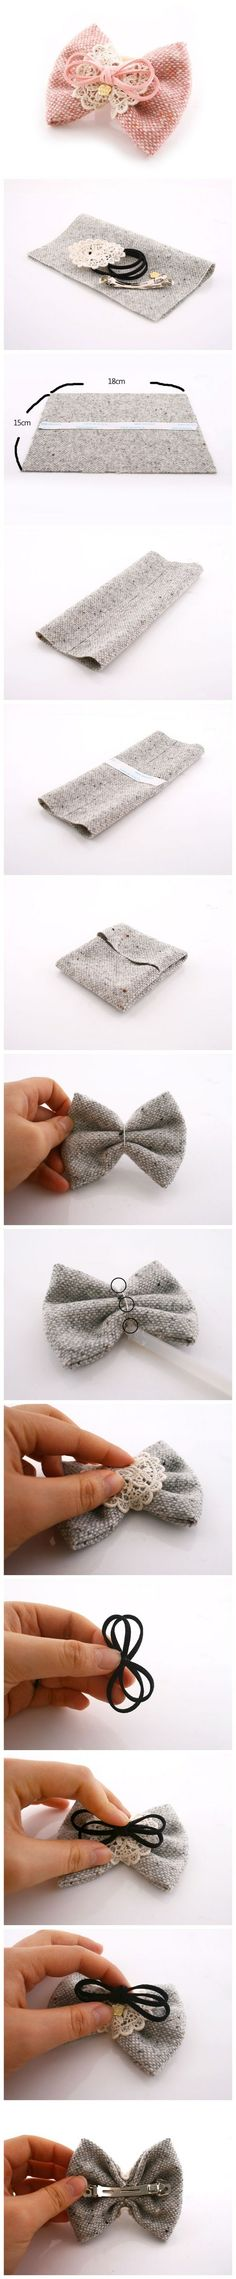 fabric bow tutorial Choose from a collection of best bow tutorials to learn to make stylish bows in many different ways using ribbon, felt, fabric, paper, crochet and knitting. Diy Ribbon, Ribbon Crafts, Ribbon Bows, Ribbons, Burlap Bows, Lace Bows, Fabric Bows, Fabric Flowers, Hand Made